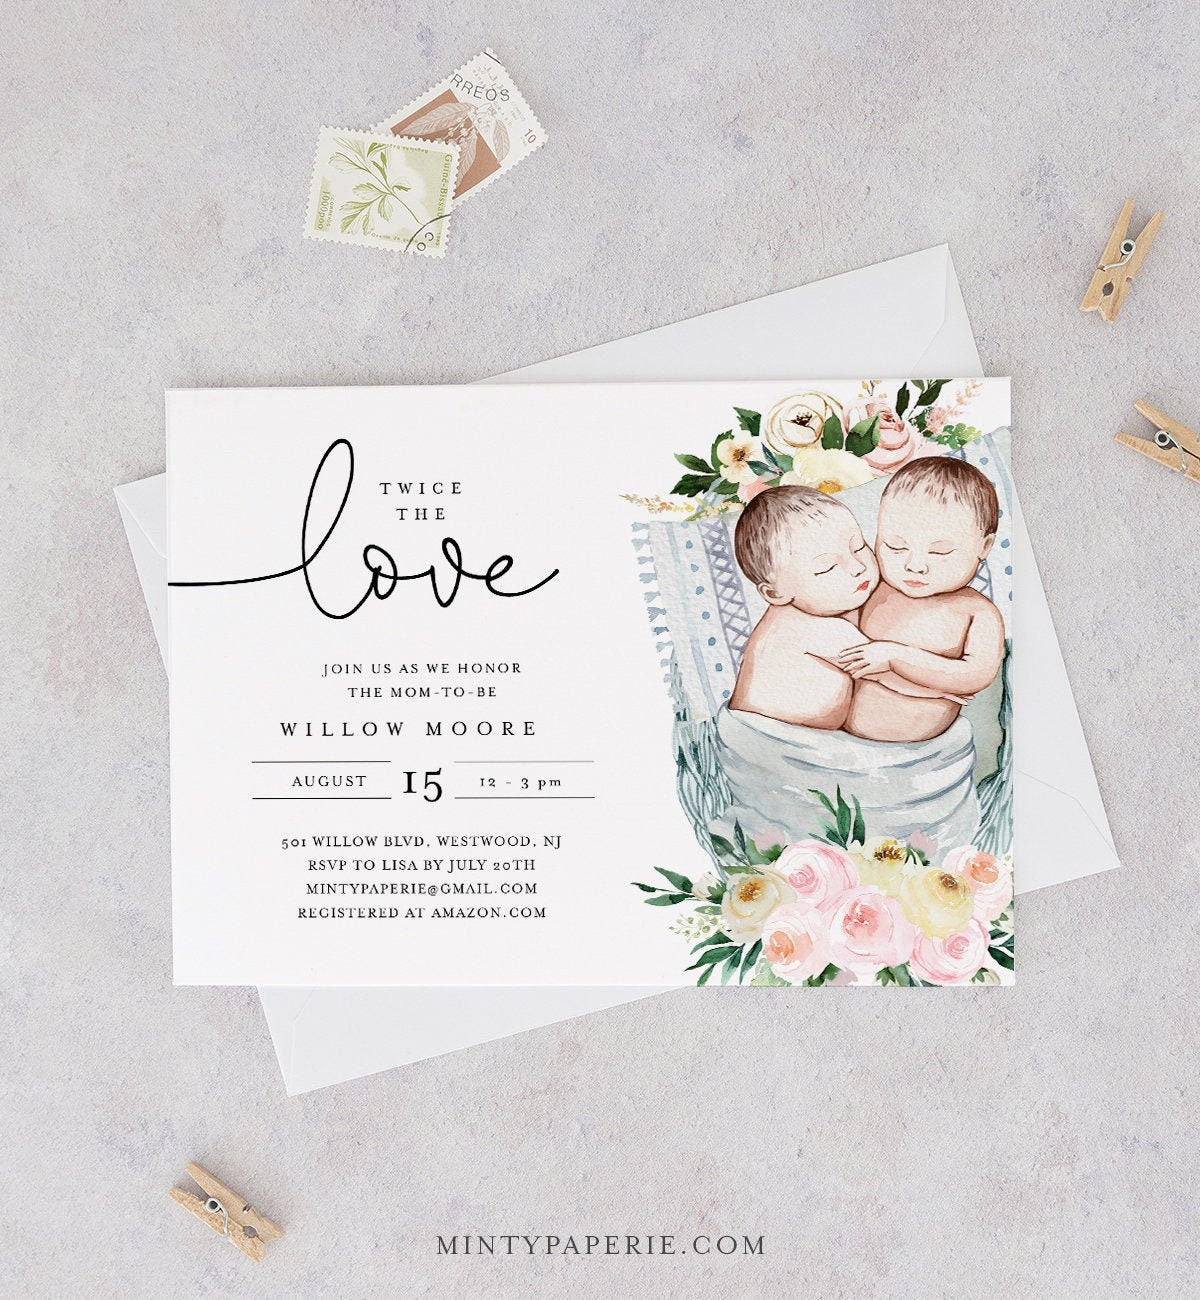 Twins Baby Shower Invitation Template Gender Neutral Twin Babies Girl Or Boy Twins Twice The Love Instant Download Templett 0005 176ba